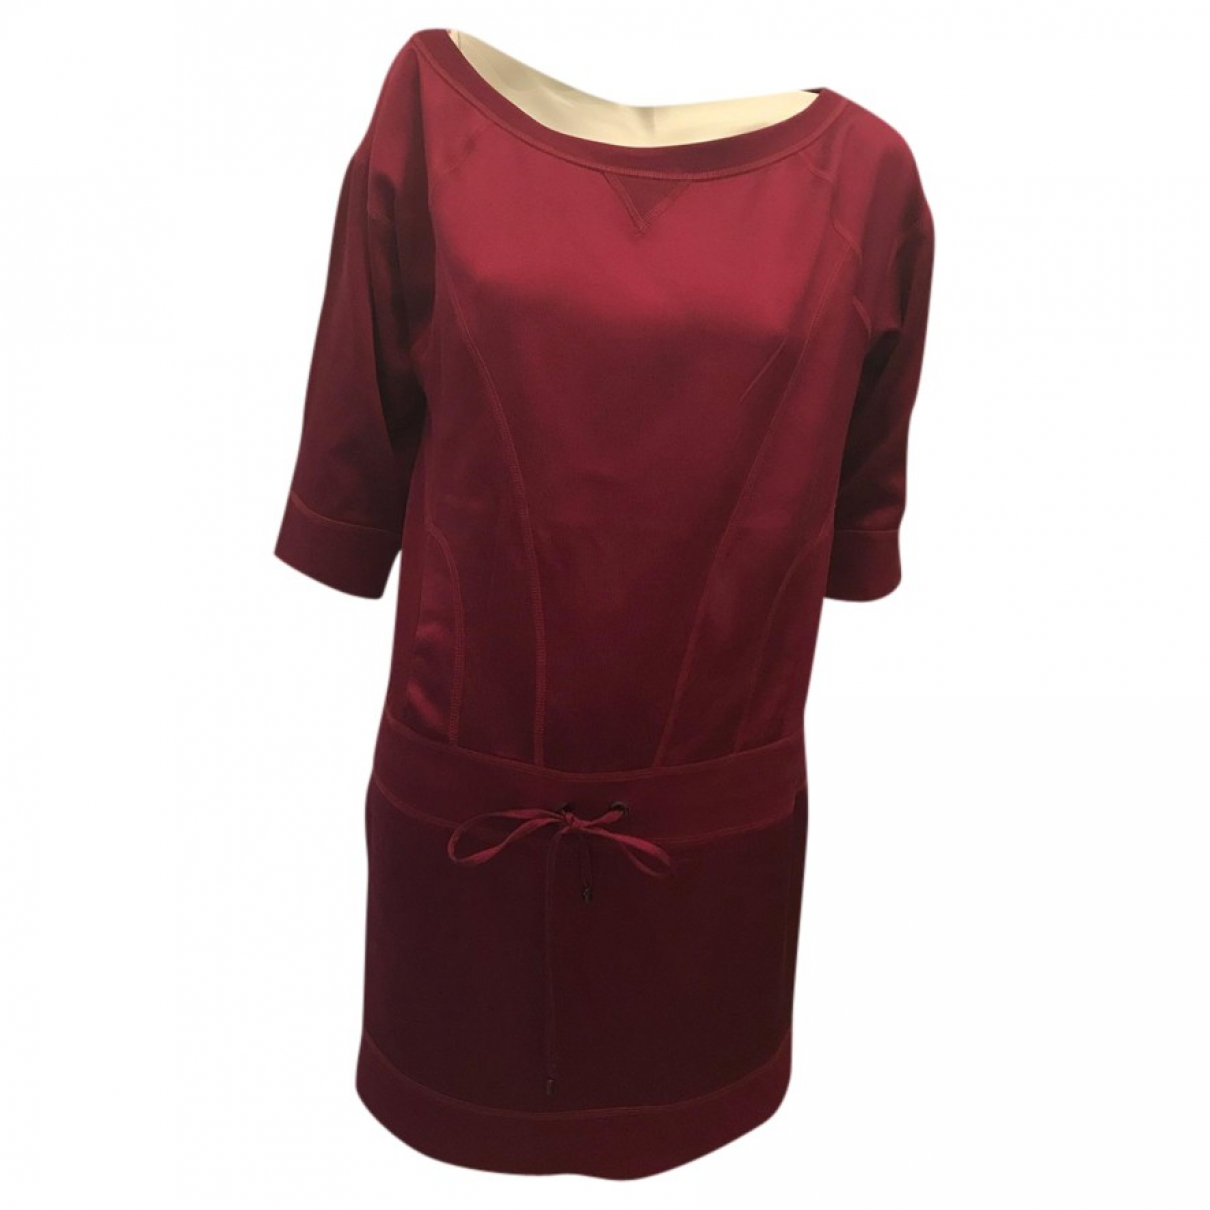 Diane Von Furstenberg \N Burgundy Silk dress for Women 40 FR